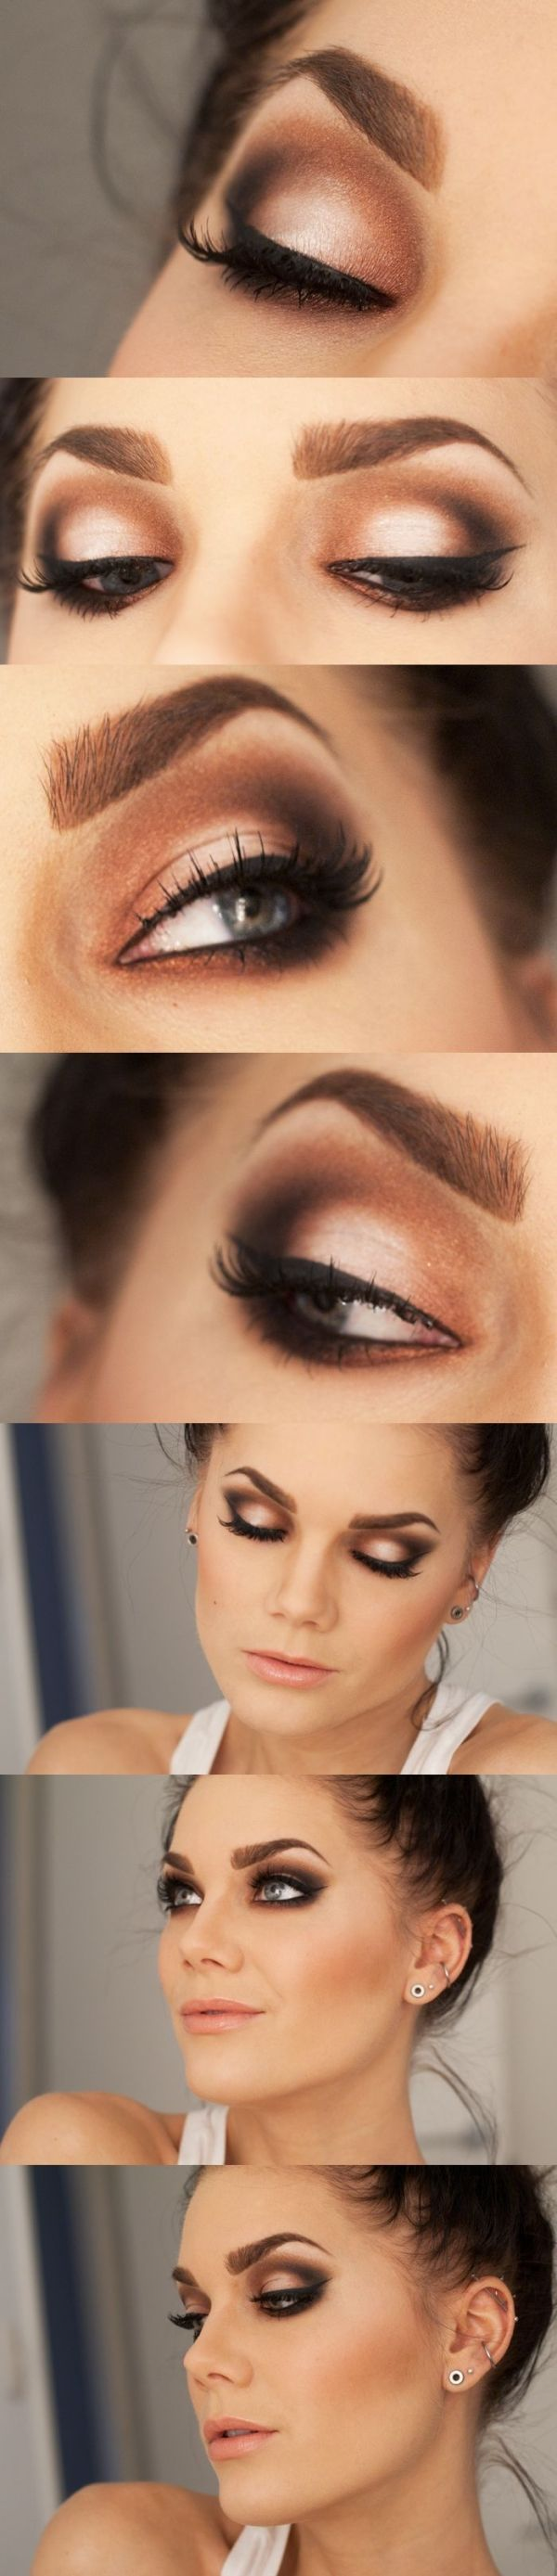 unique wedding ideas | Shades of brown | Outer Beauty